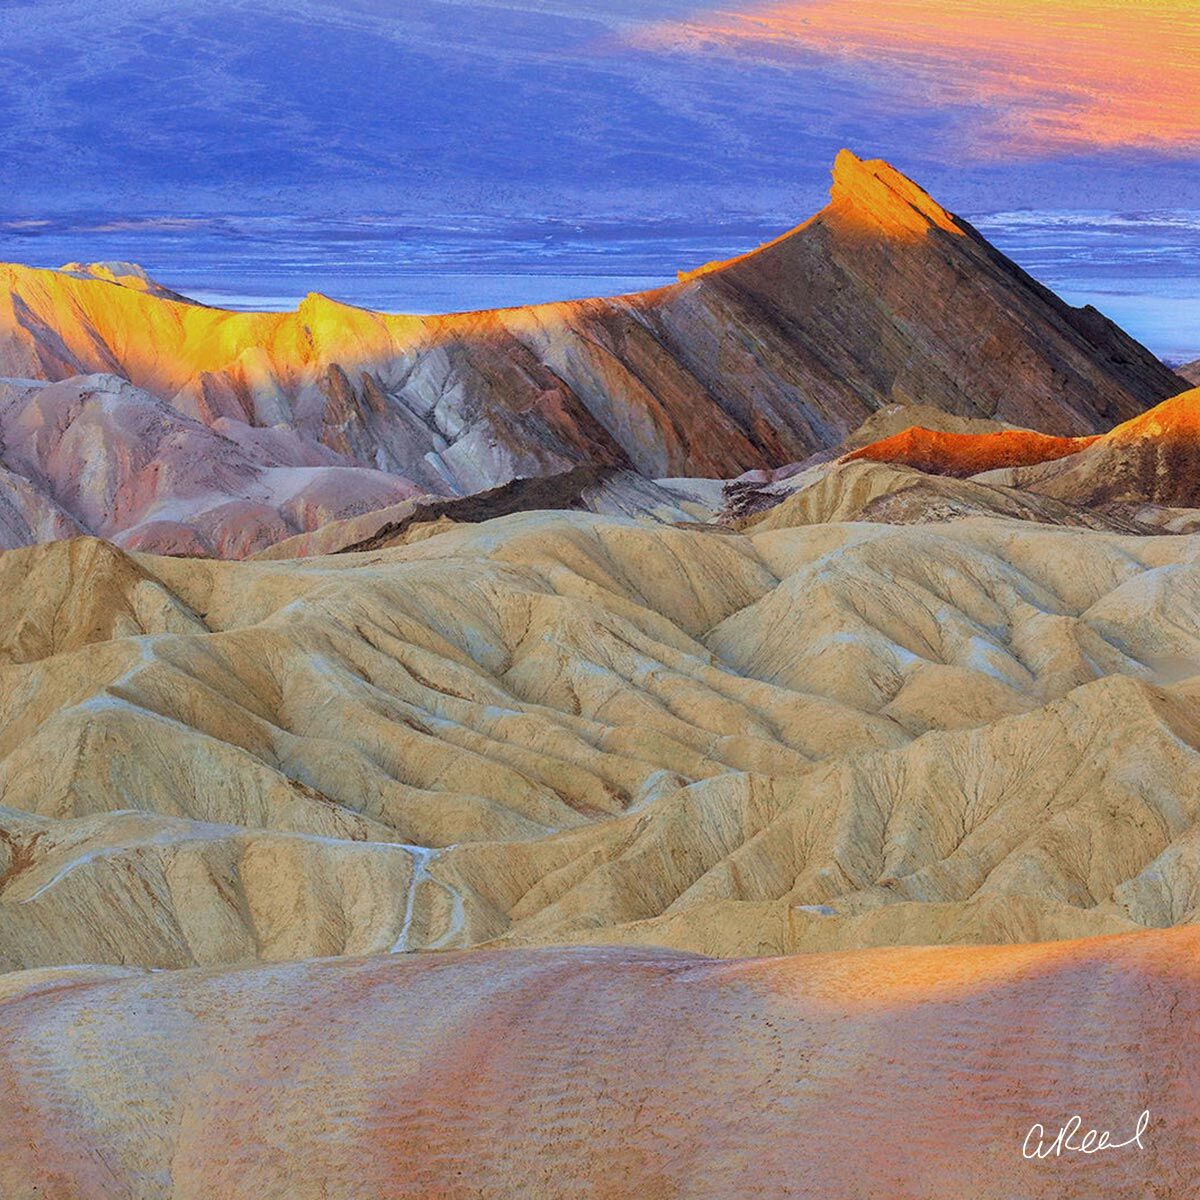 A fine art photograph of Zabriskie Point in California titled First Strike.